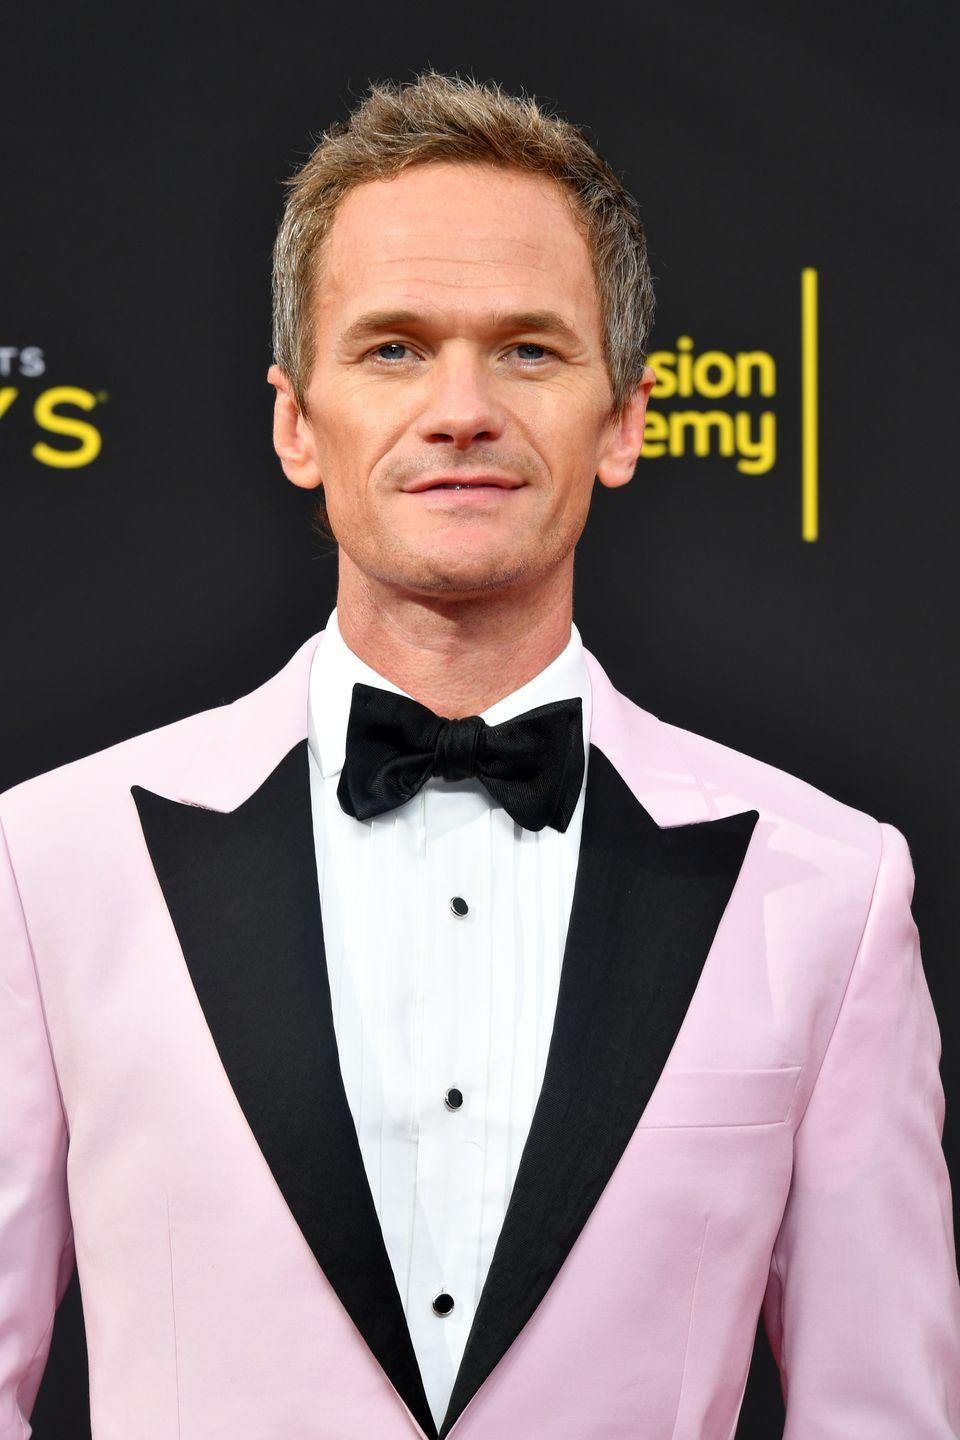 "<p>Now: From Count Olaf in A Series of Unfortunate Events to Barney Stintson in How I Met Your Mother to Doogie Howser, M.D., Harris has had quite a career. Even though television is his most popular medium, the actor has peppered <a href=""https://www.imdb.com/name/nm0000439/"" rel=""nofollow noopener"" target=""_blank"" data-ylk=""slk:film roles"" class=""link rapid-noclick-resp"">film roles</a> throughout his 30 year career. And let's not forget his impressive musical theater roster.</p>"